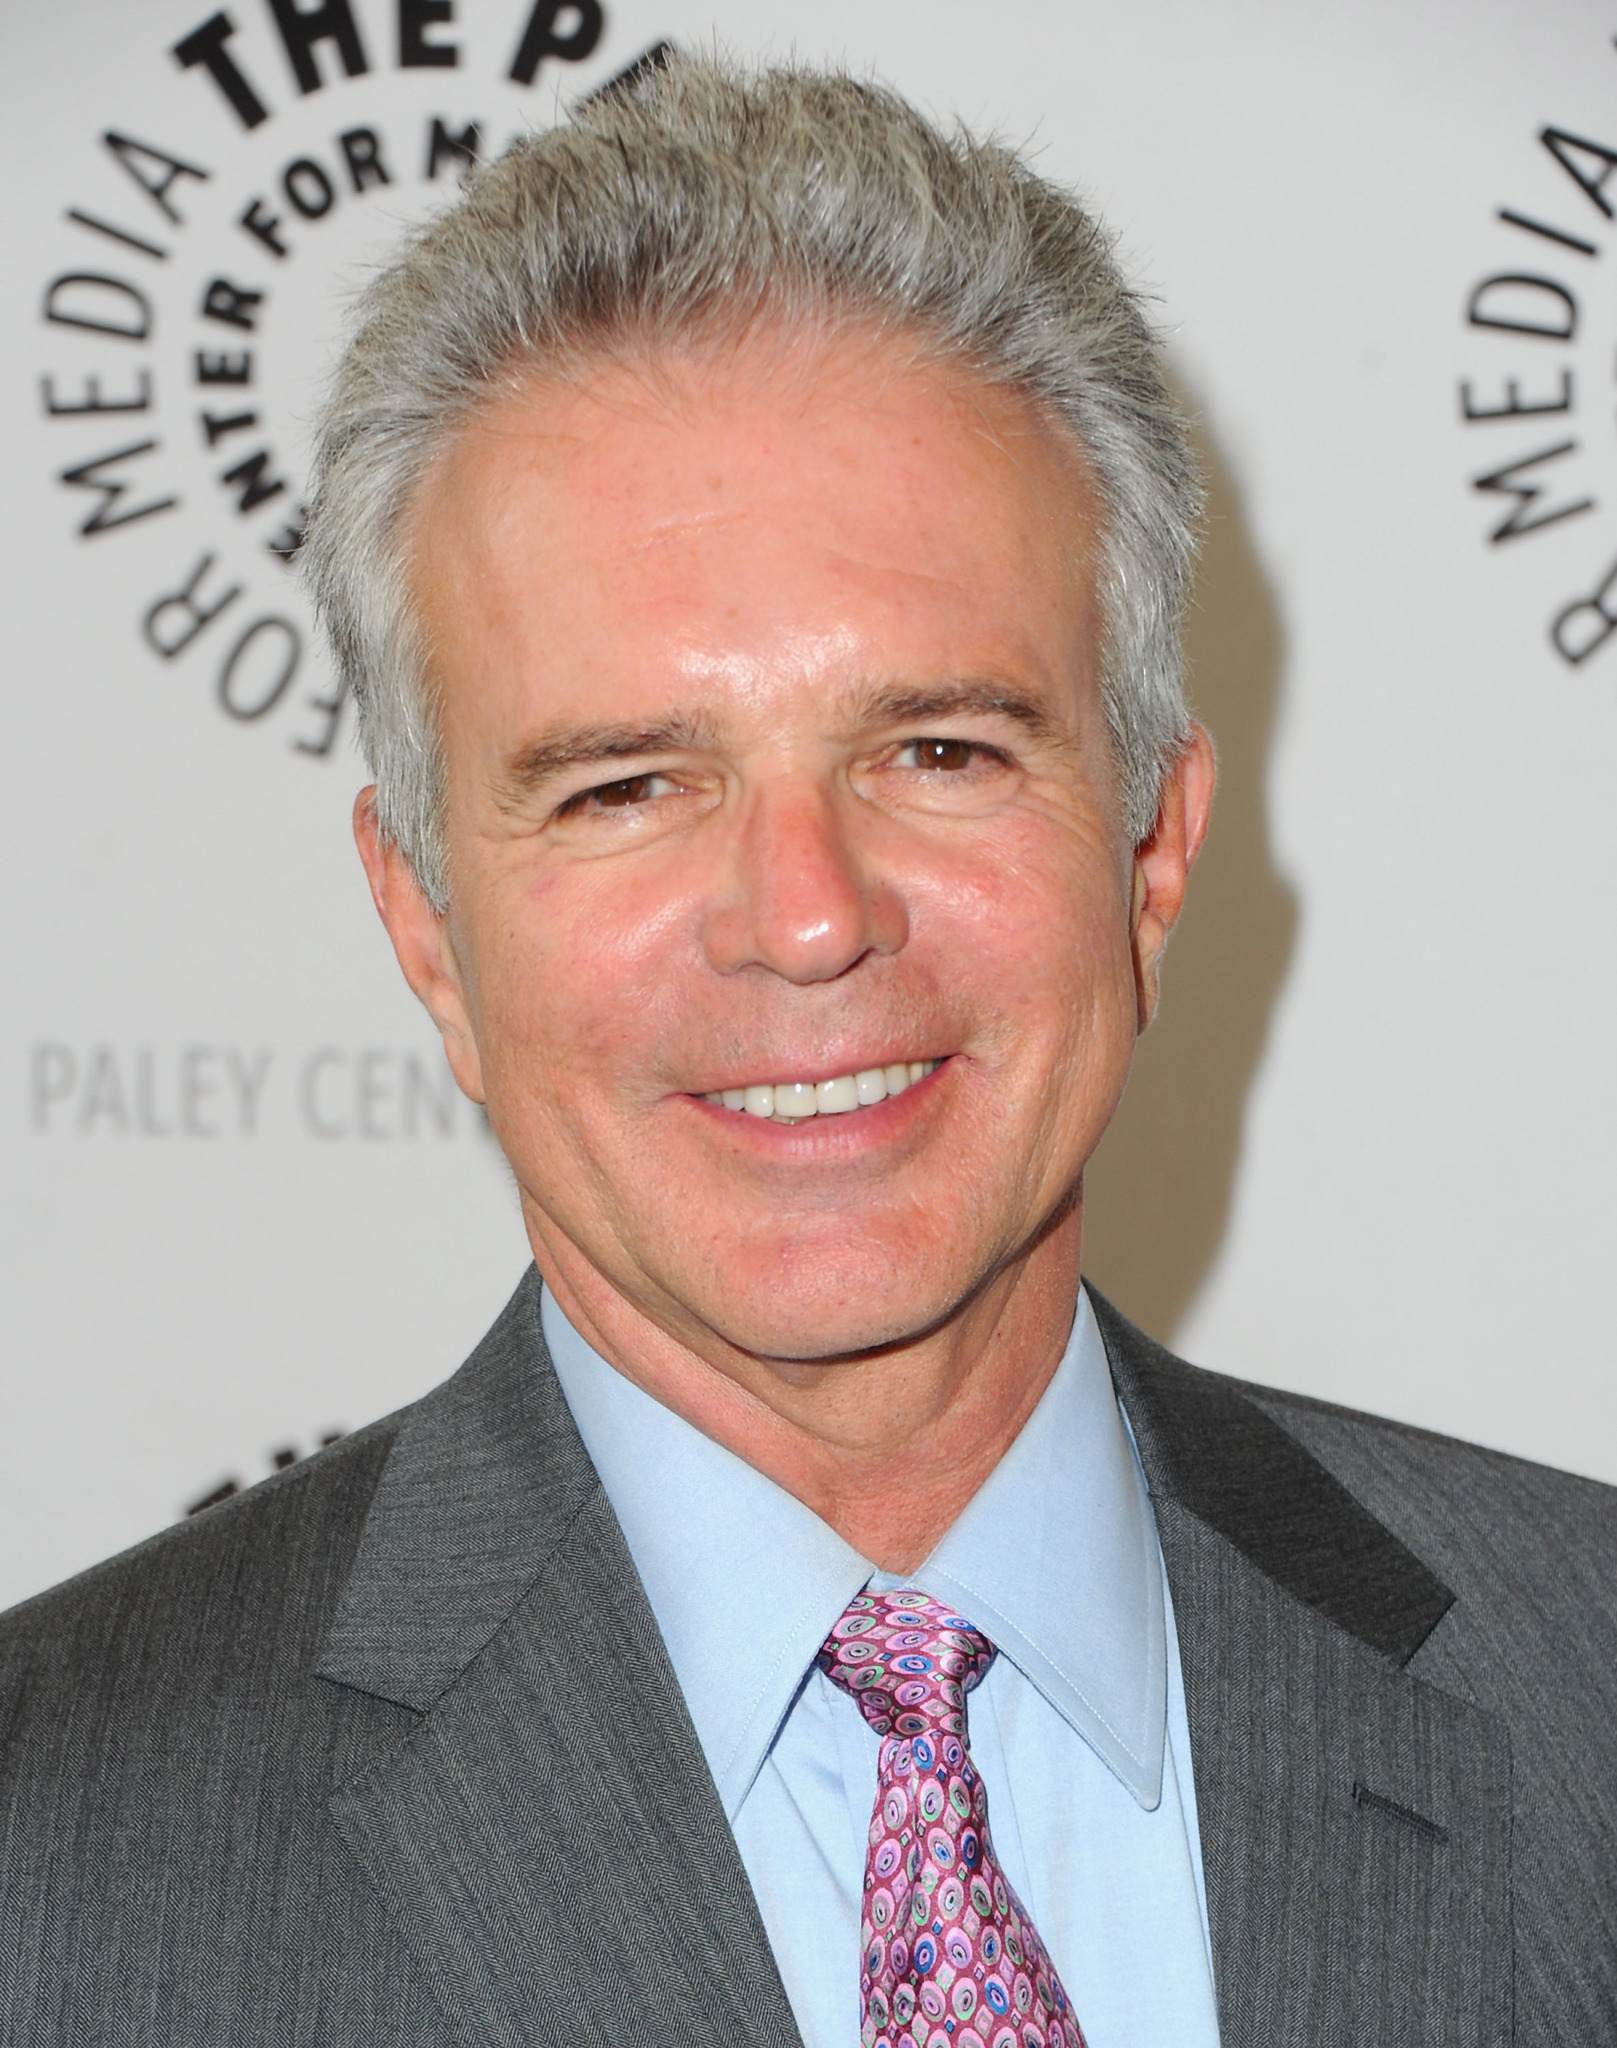 Tony Denison at an event for The Closer (2005)